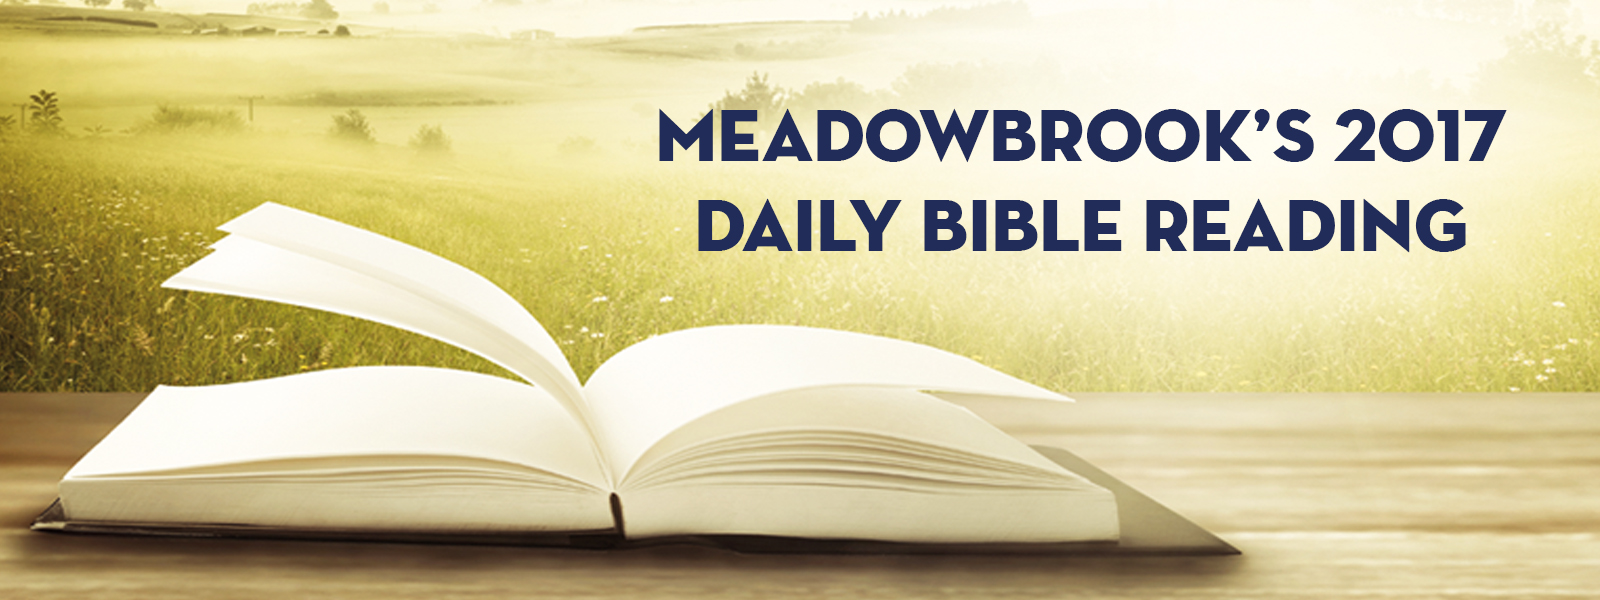 2017 Daily Bible Reading